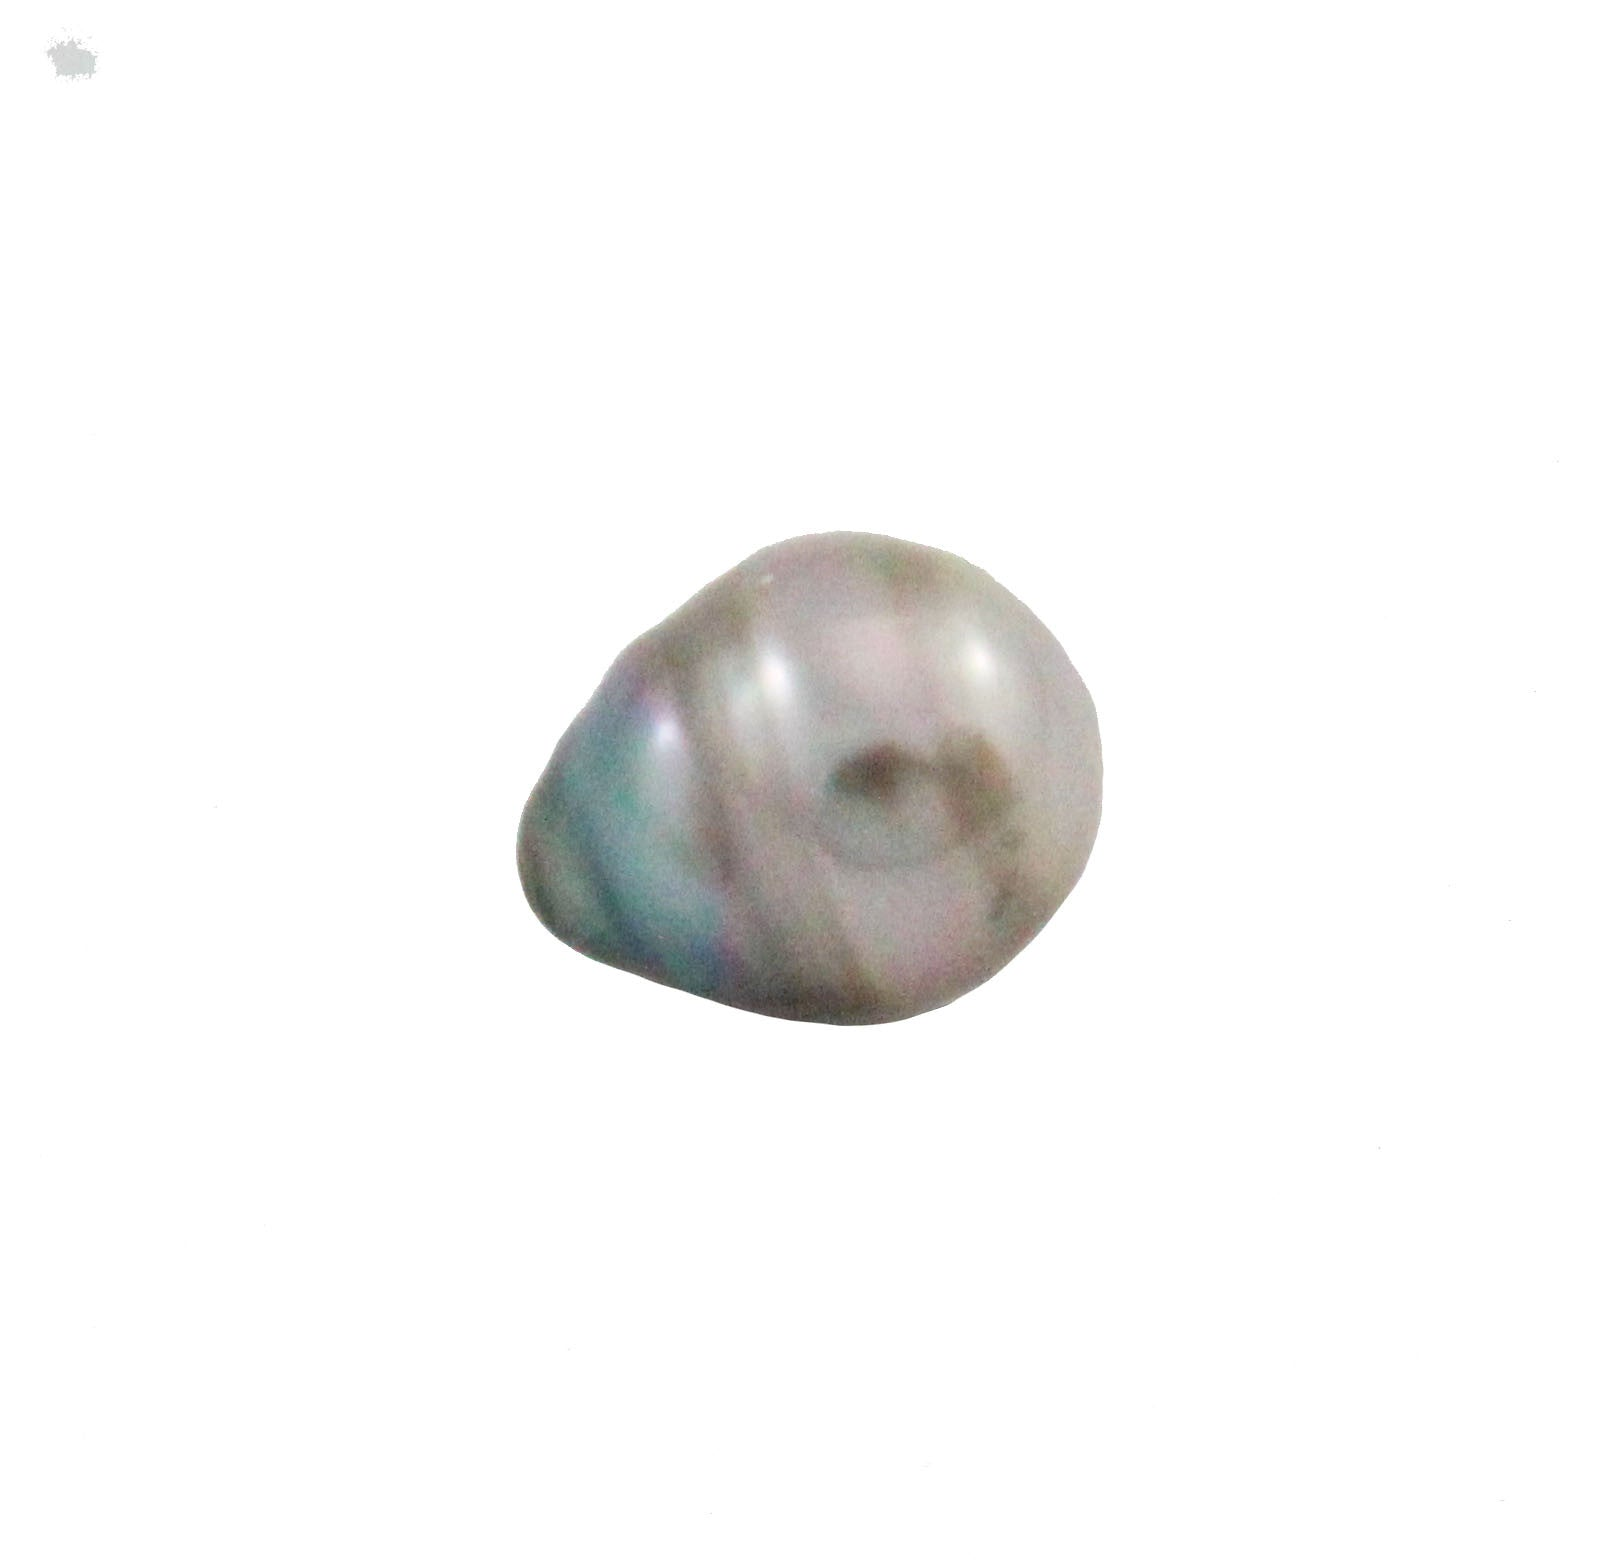 Tahitian pearl undrilled 0.95gr mm 10.26x8.26mm - Purchase only with custom order - Sarah Hughes - 4